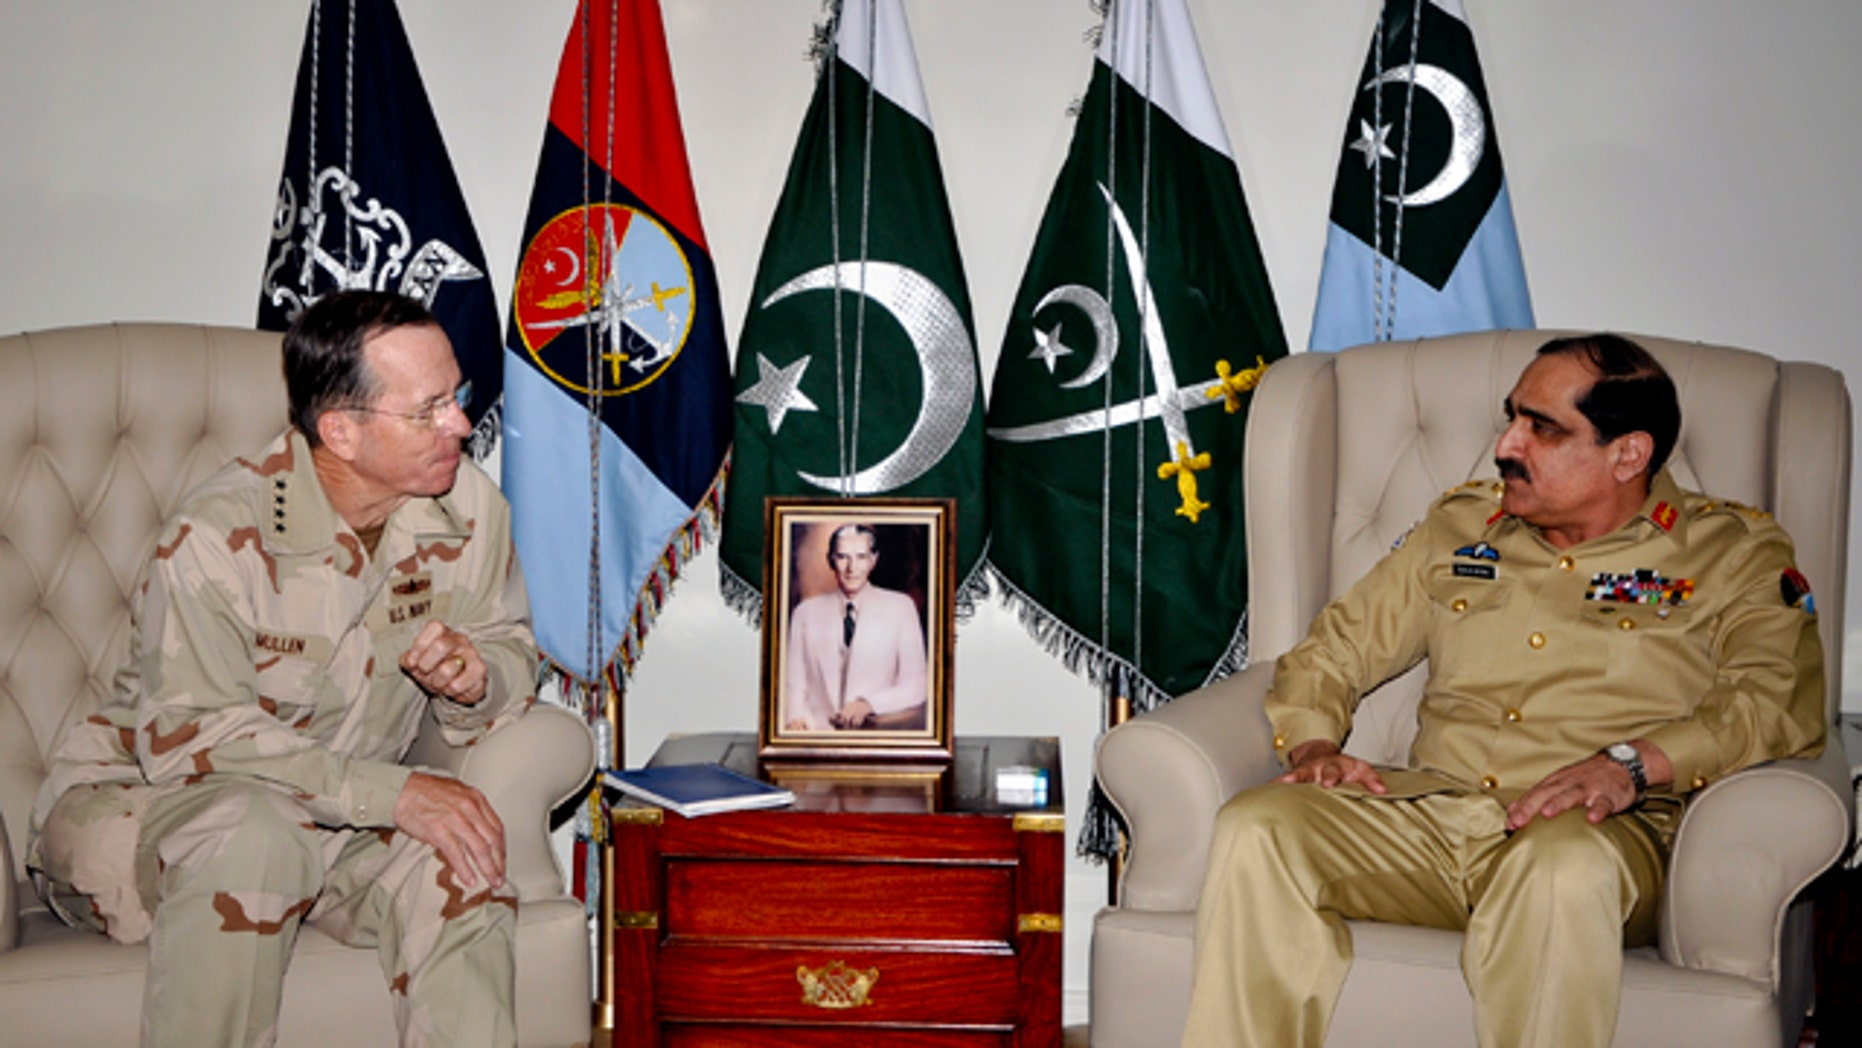 April 20: In this photo released by Inter Services Public Relations, Joint Chiefs of Staff Chairman Adm. Mike Mullen listens to Pakistan's Joint Chiefs of Staff Committee Chairman Gen. Khalid Shameem Wynne during a meeting in Rawalpindi, Pakistan.